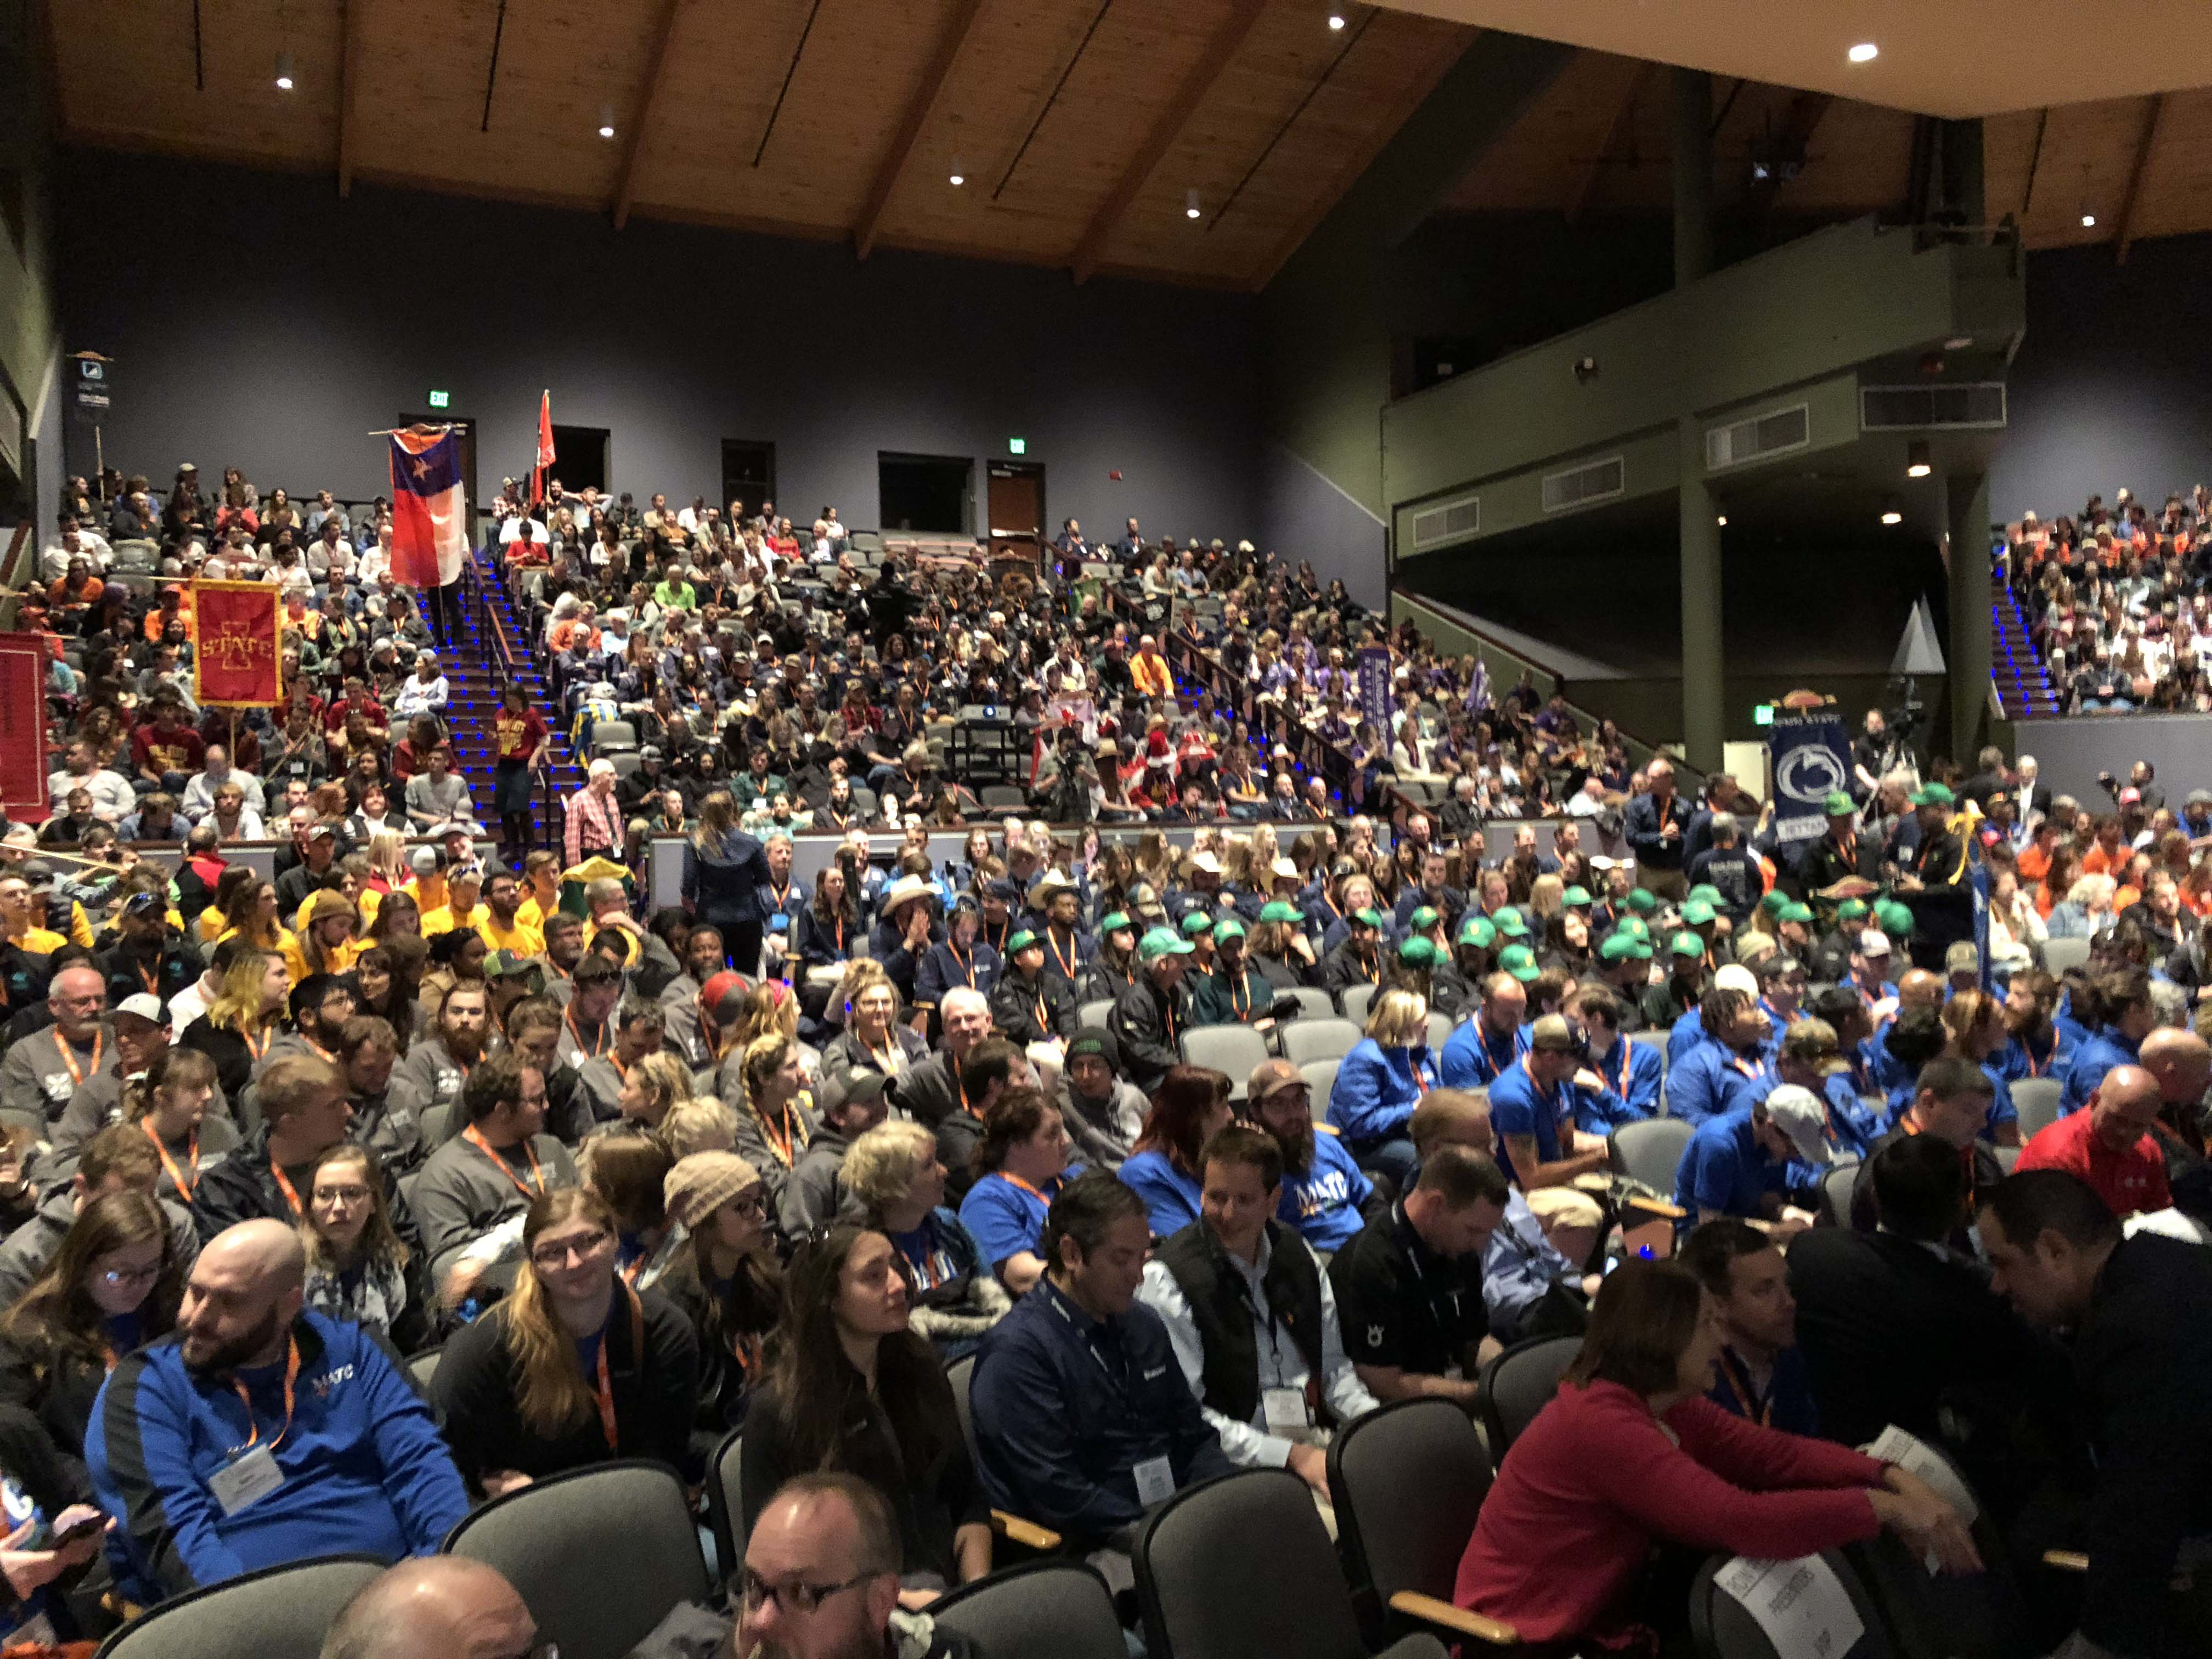 A packed house at the opening ceremony of NCLC. It was held at the Lincoln Center on Colorado State University's campus. (Photo: Seth Jones)